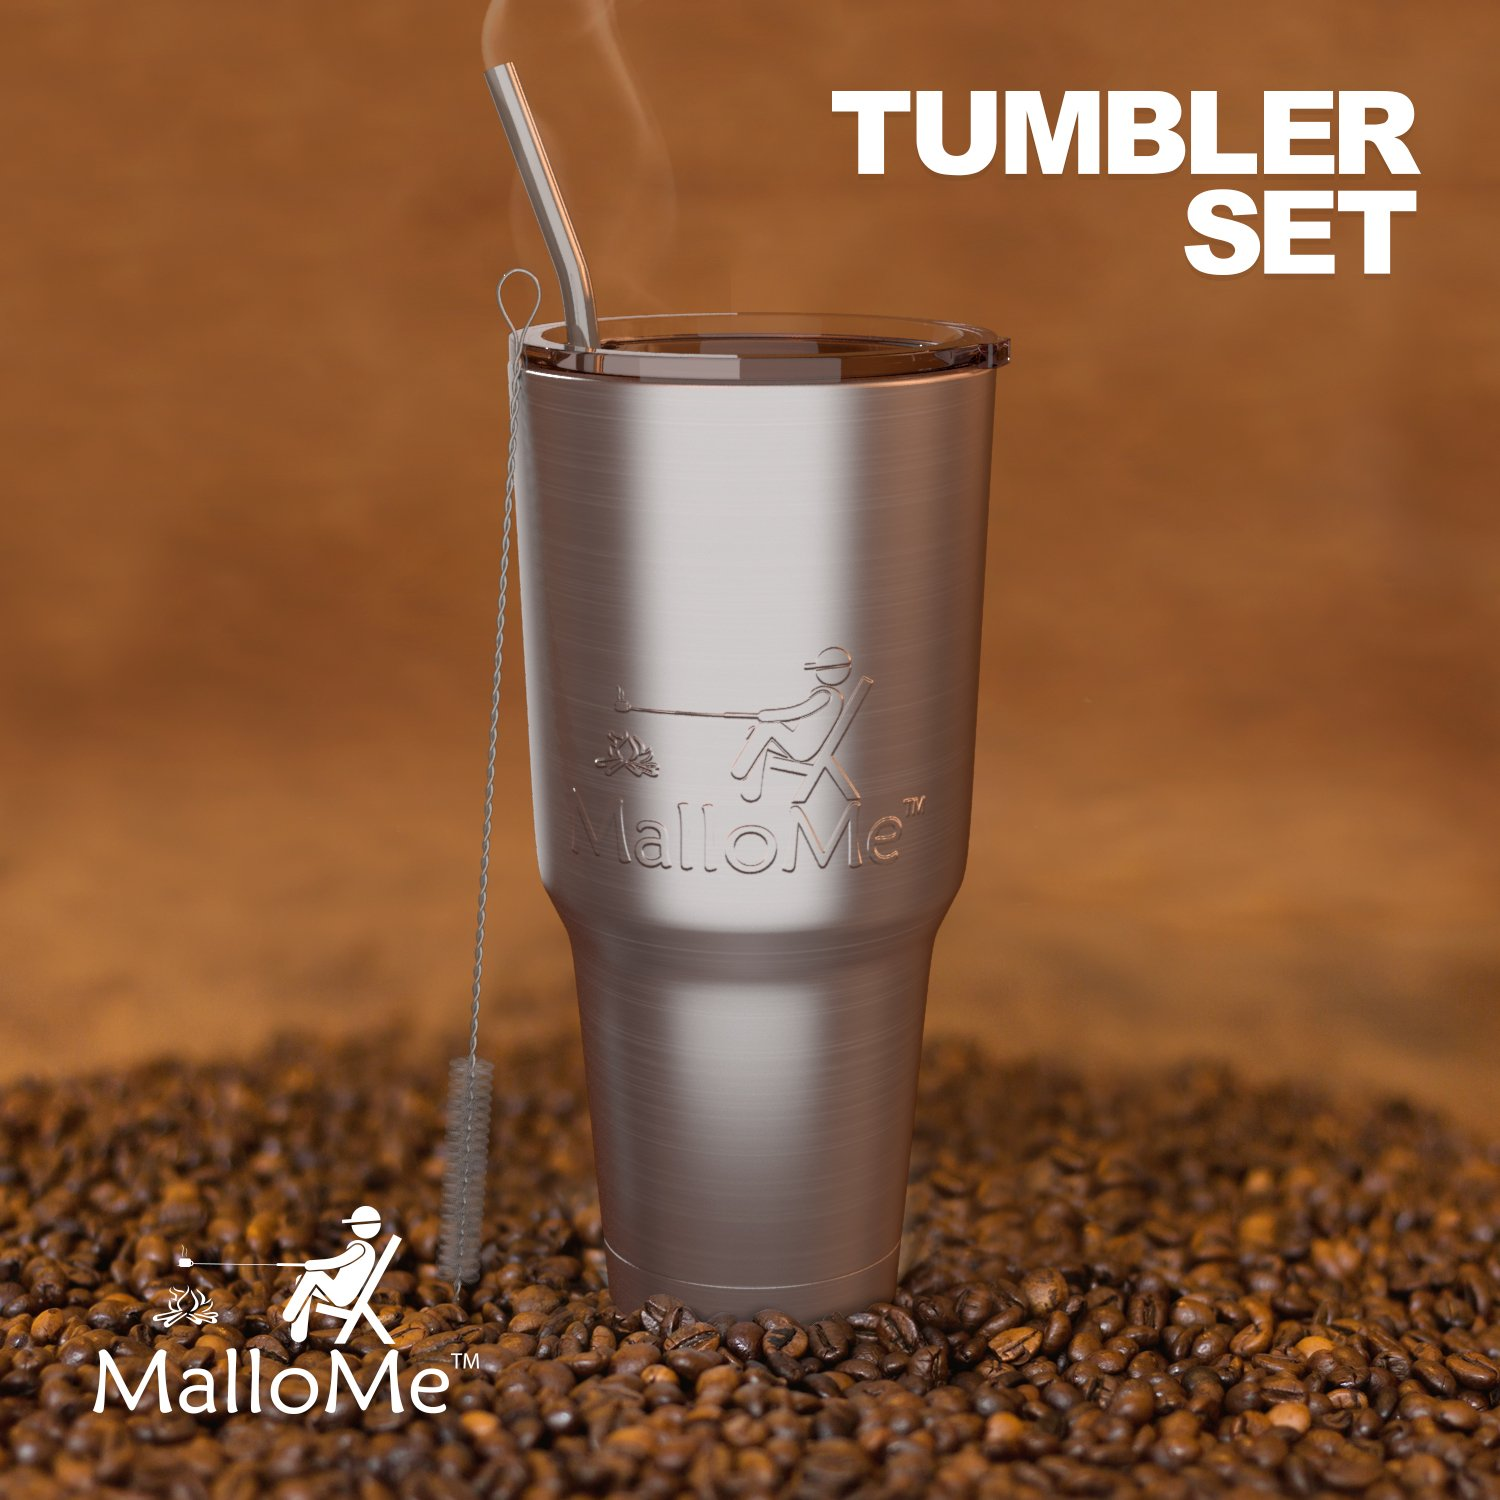 MalloMe Tumbler 30 oz. Double Wall Stainless Steel Vacuum Insulated - Travel Mug [Crystal Clear Lid] Water Coffee Cup [Straw Included] For Home,Office,School - Works Great for Ice Drink, Hot Beverage by MalloMe (Image #6)